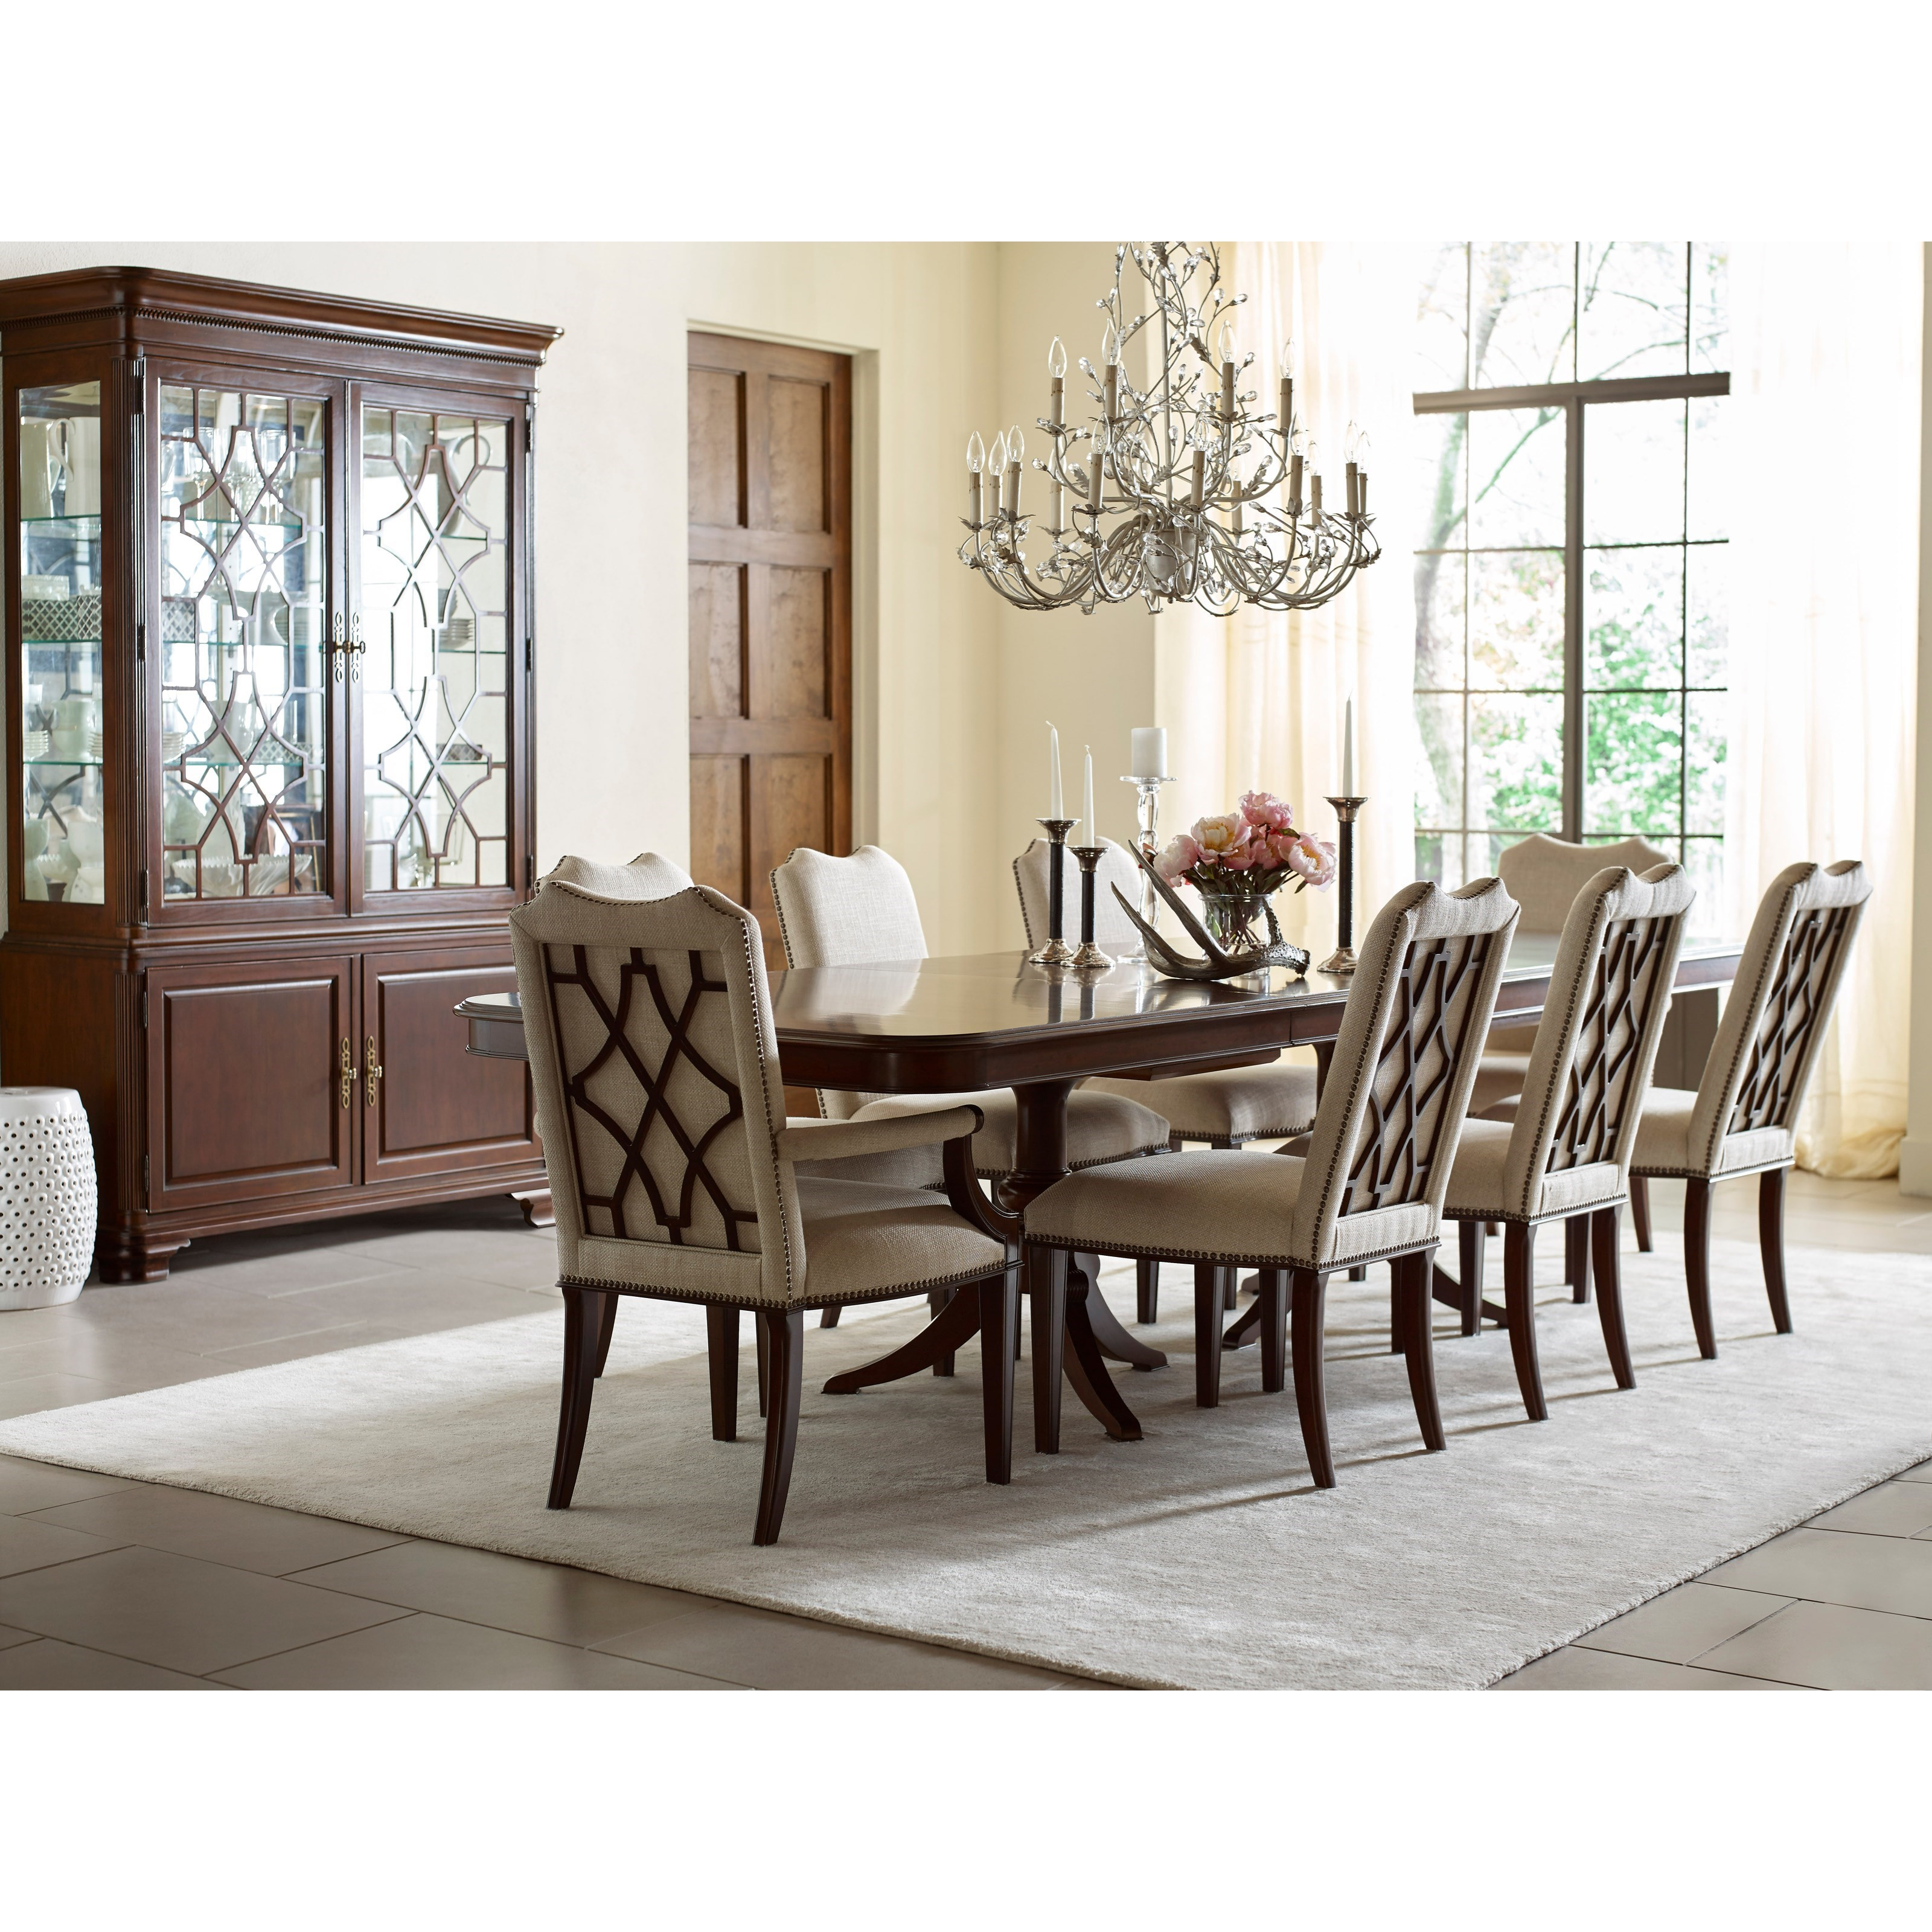 Kincaid Dining Room Set: Kincaid Furniture Hadleigh Nine Piece Formal Dining Set With Upholstered Chairs